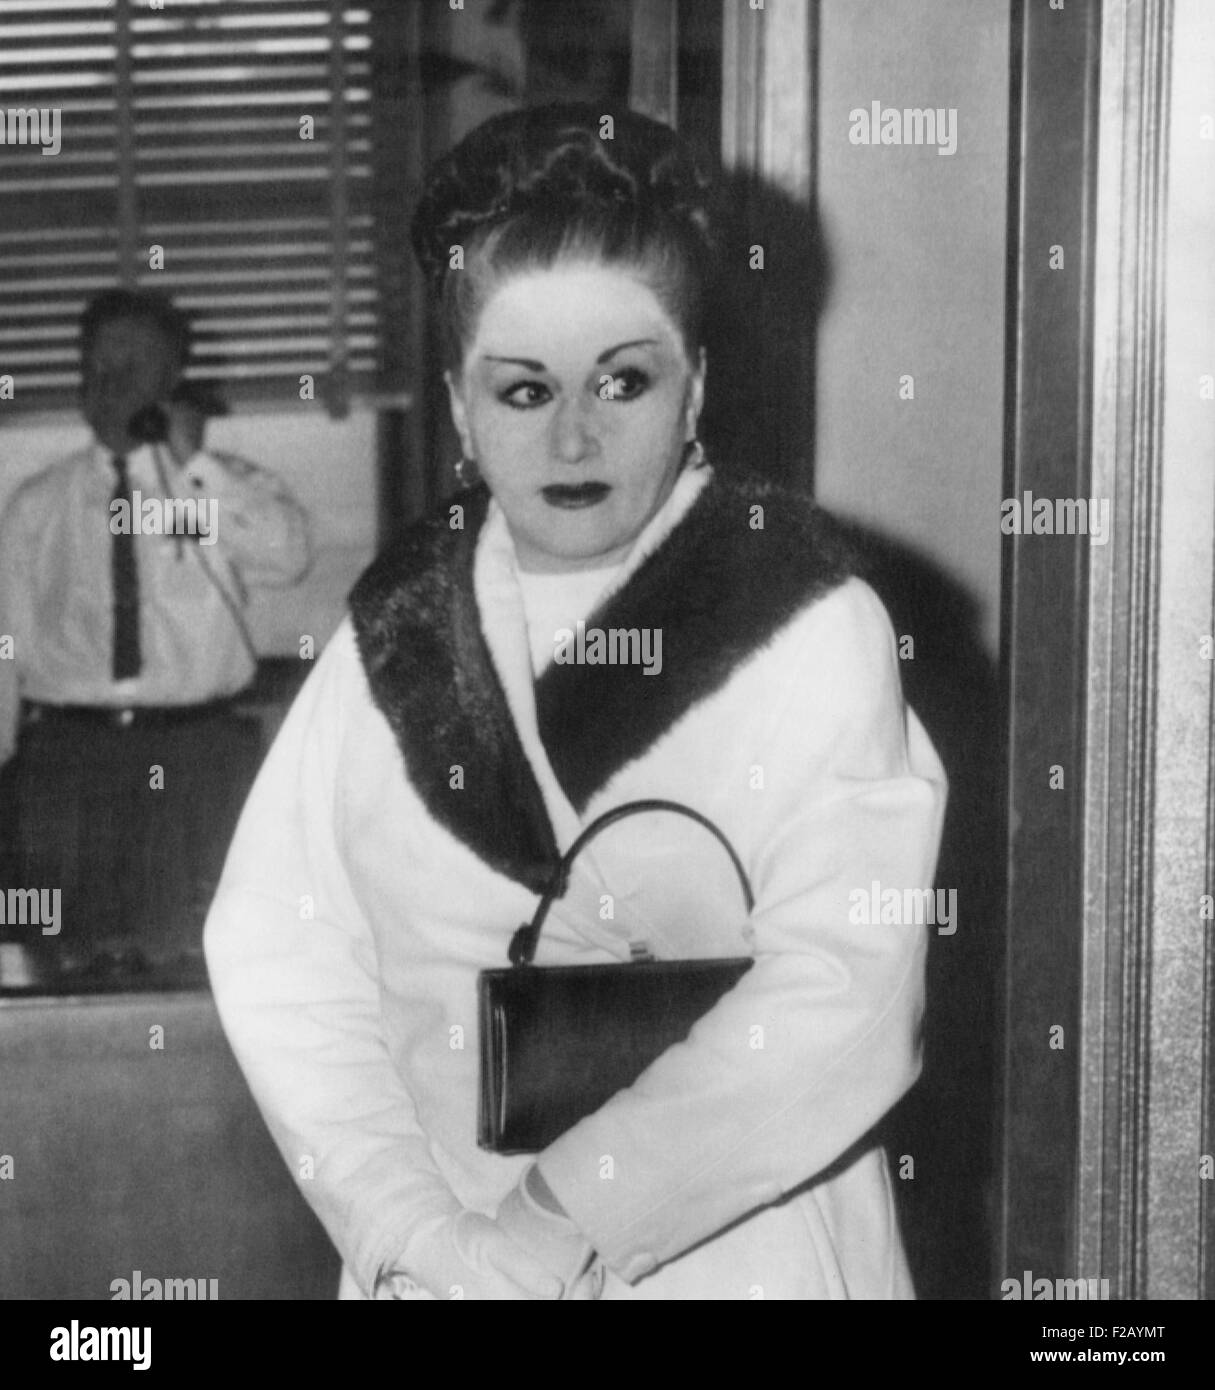 Anna Petillo, estranged wife of racketeer, Vito Genovese, was questioned by Mercer County grand jury. They asked about eight New Jersey men, including her husband, who attended a gangland convention in Apalachin, New York. Dec. 17, 1957. (CSU 2015 9 740)